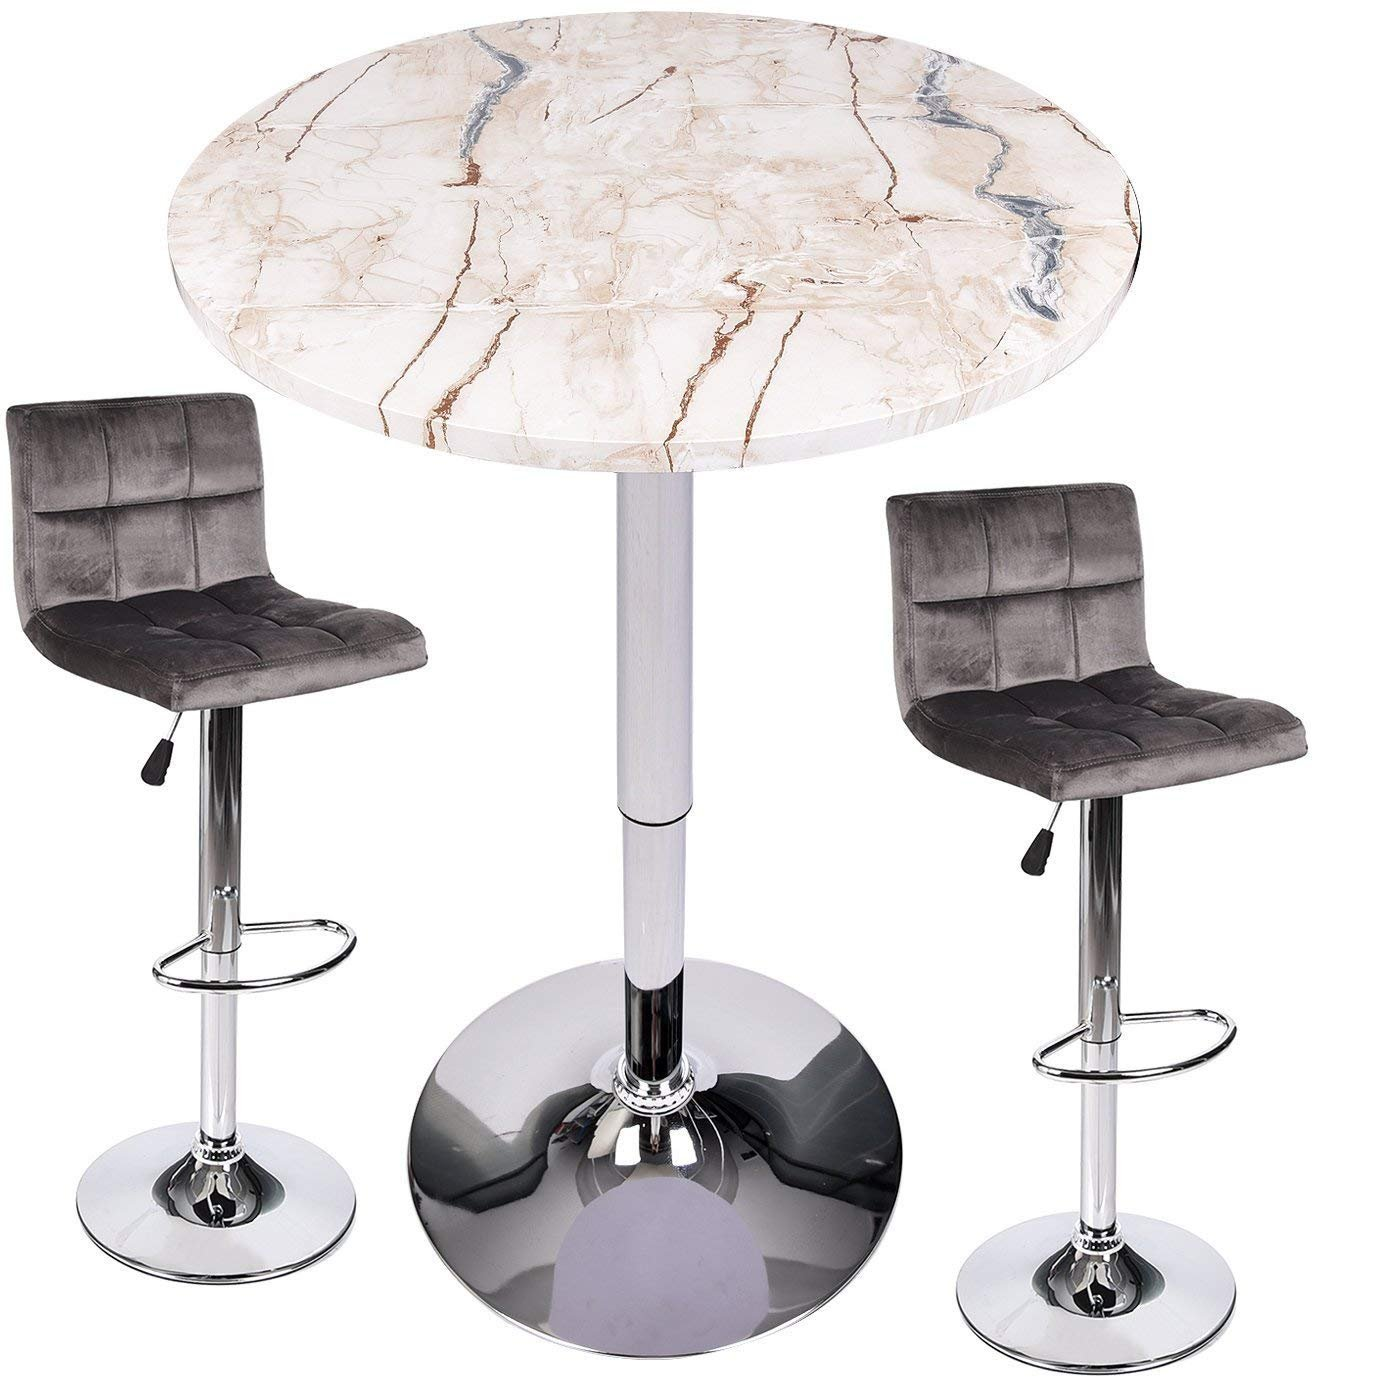 3 Piece Bar Table Stools Set - Height Adjustable Table with Swivel Bar Chairs Set - Bistro Pub Kitchen Dining Furniture (Set 6)